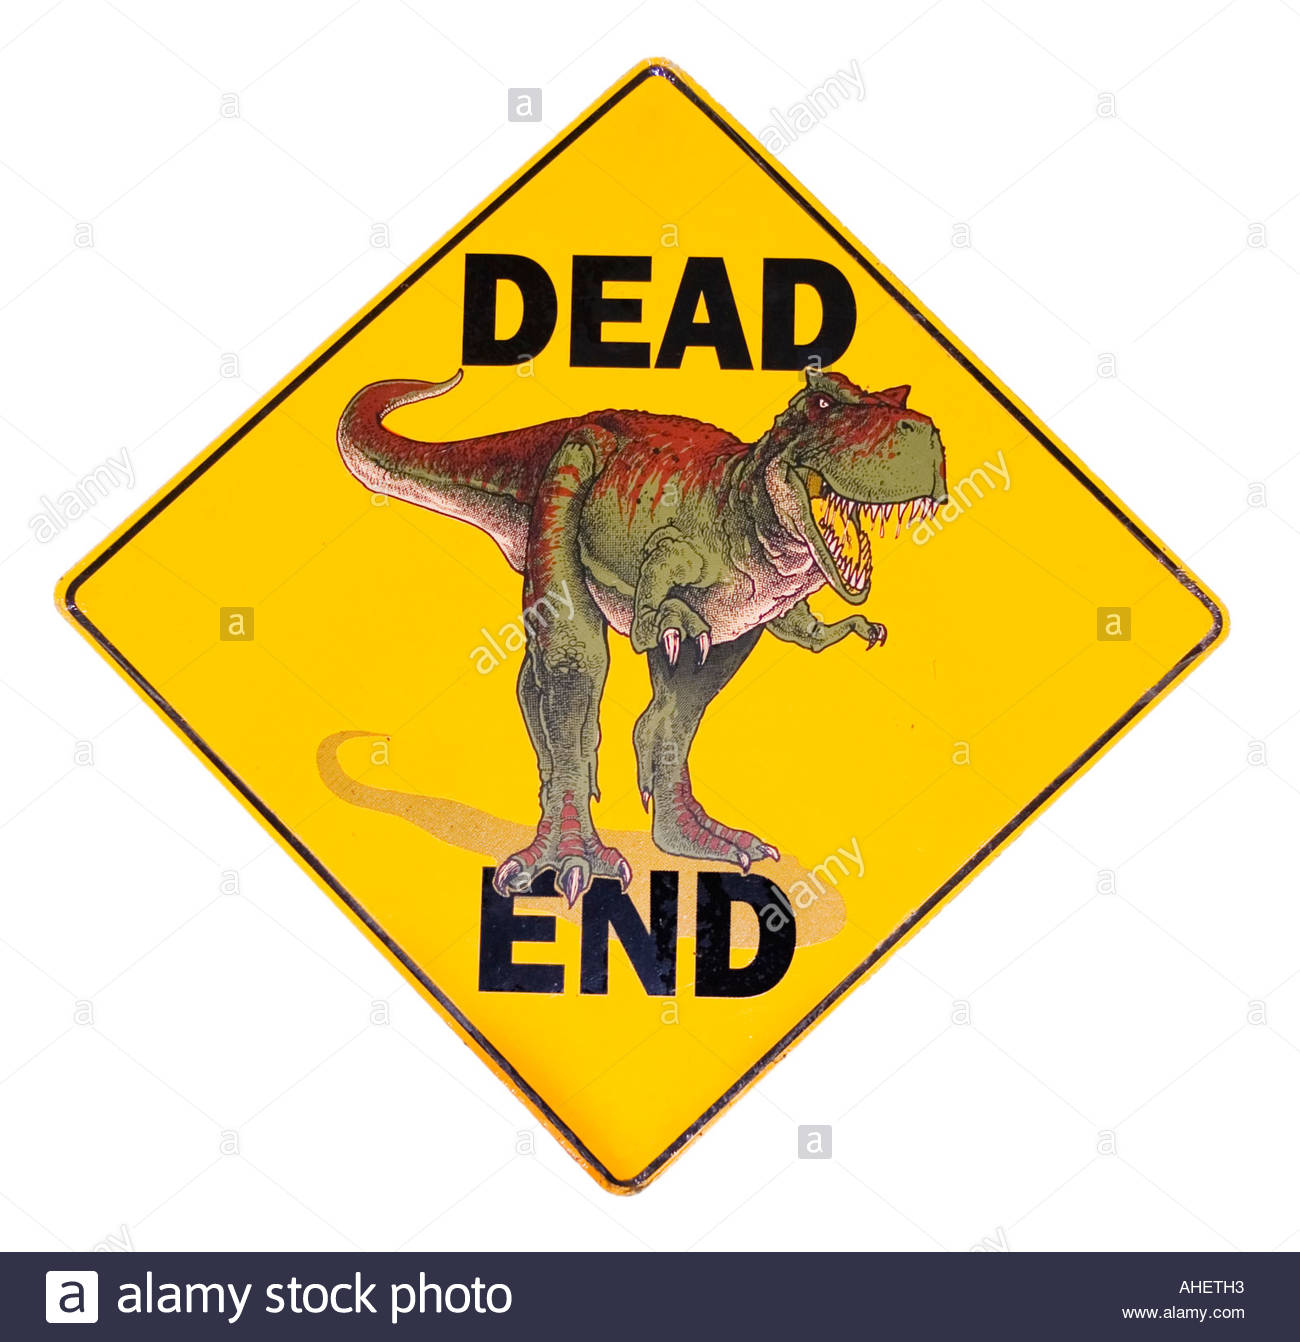 Dead End dinosaur sign at Petrified Creatures in Richfield New York - Stock Image